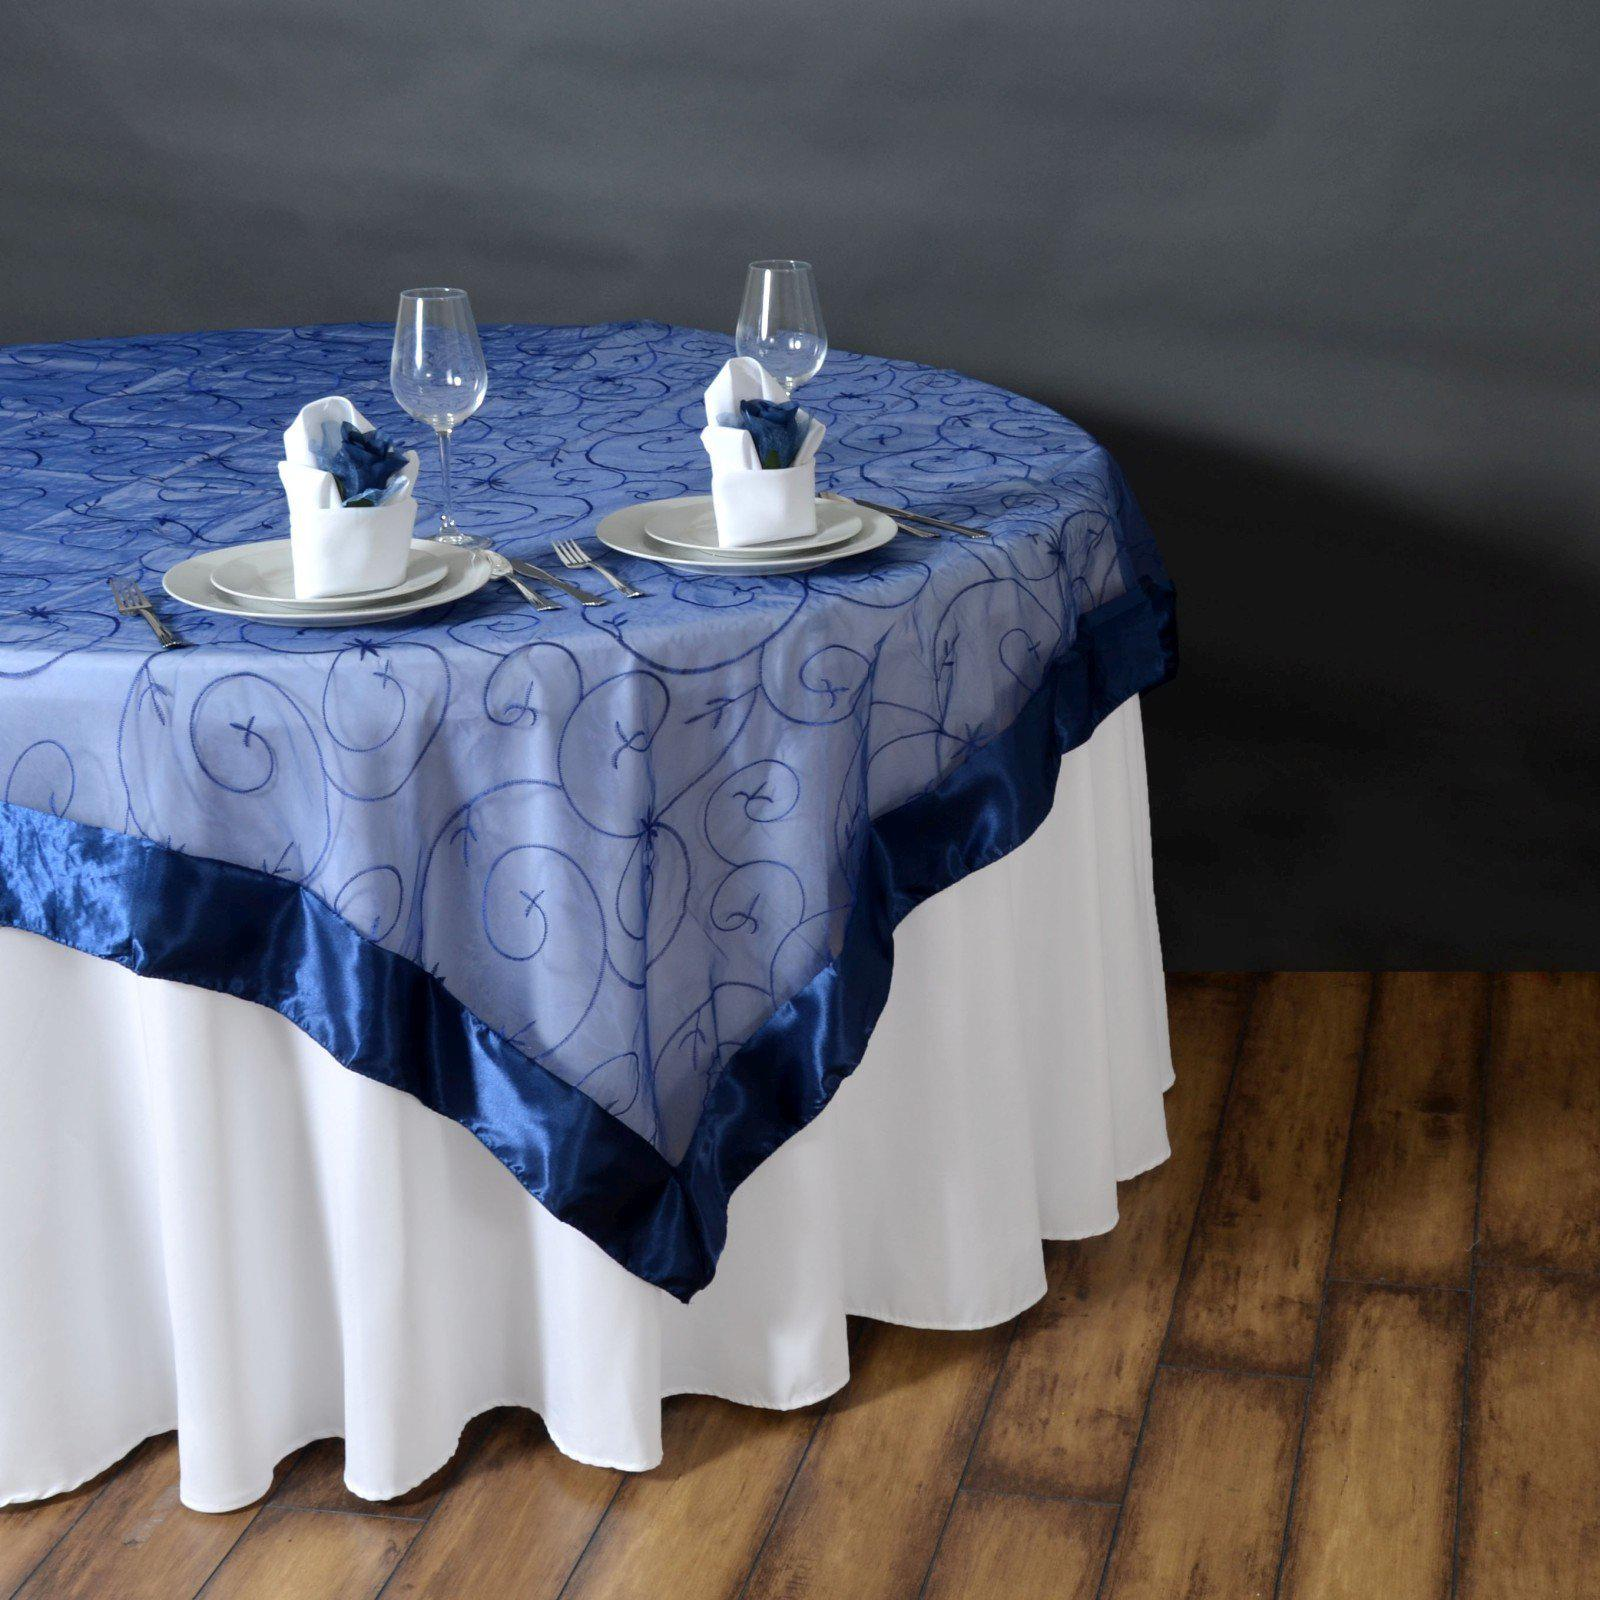 85 overlay embroider navy tablecloths factory for 85 table overlay